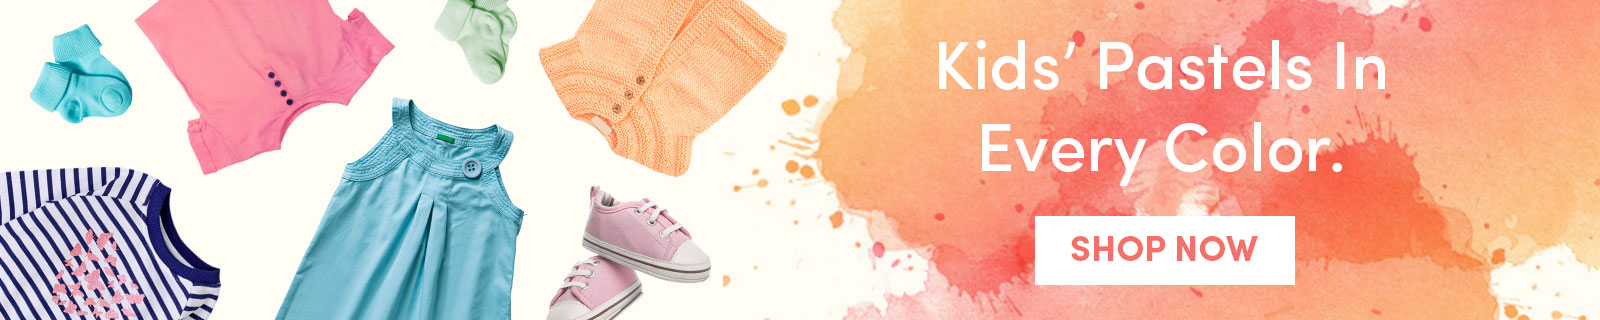 Shop the Trend: Pastels for Kids